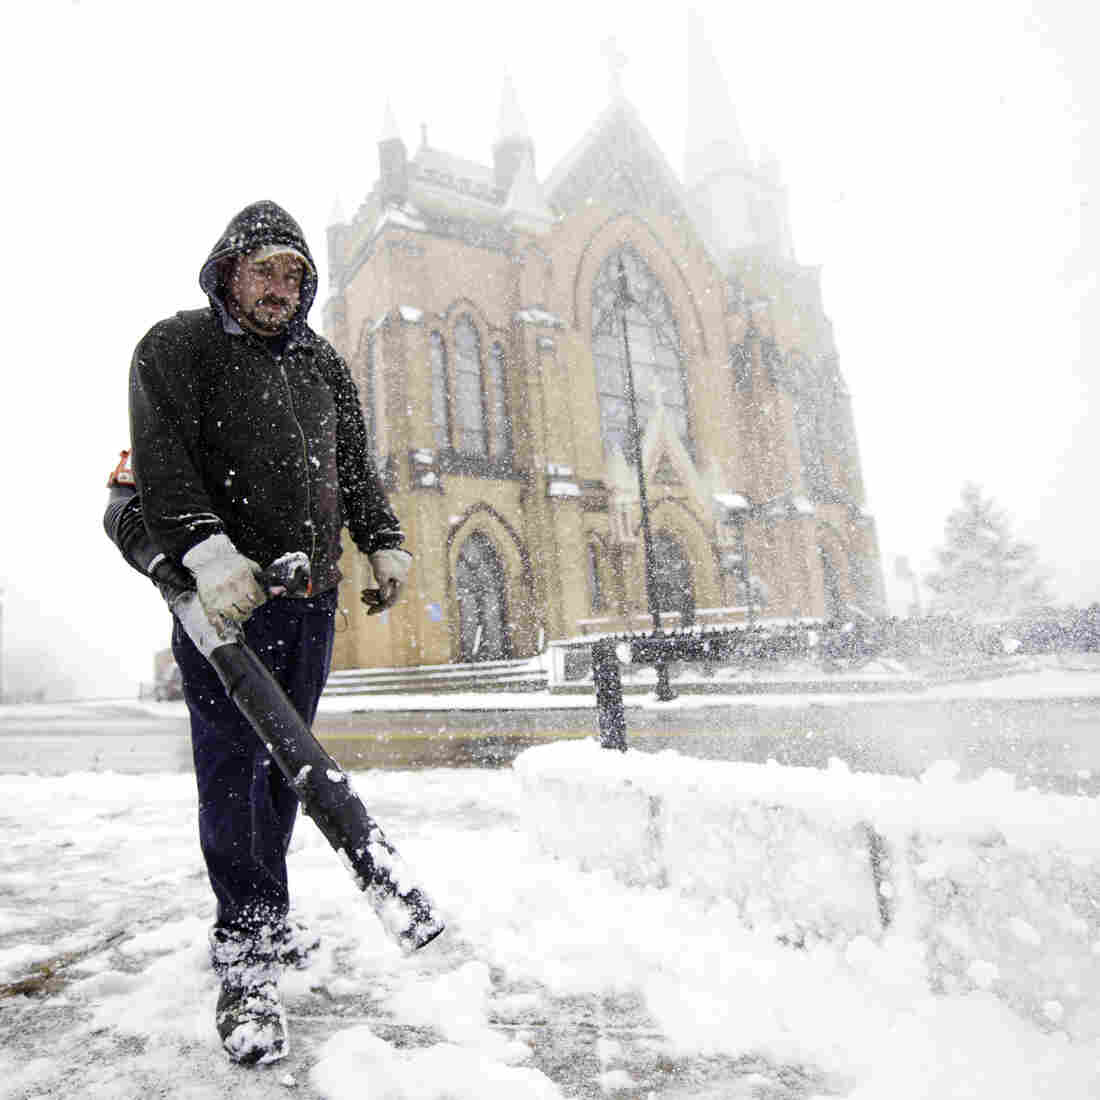 In Pittsburgh on Tuesday, Mark Swigart used a leaf blower to move snow.